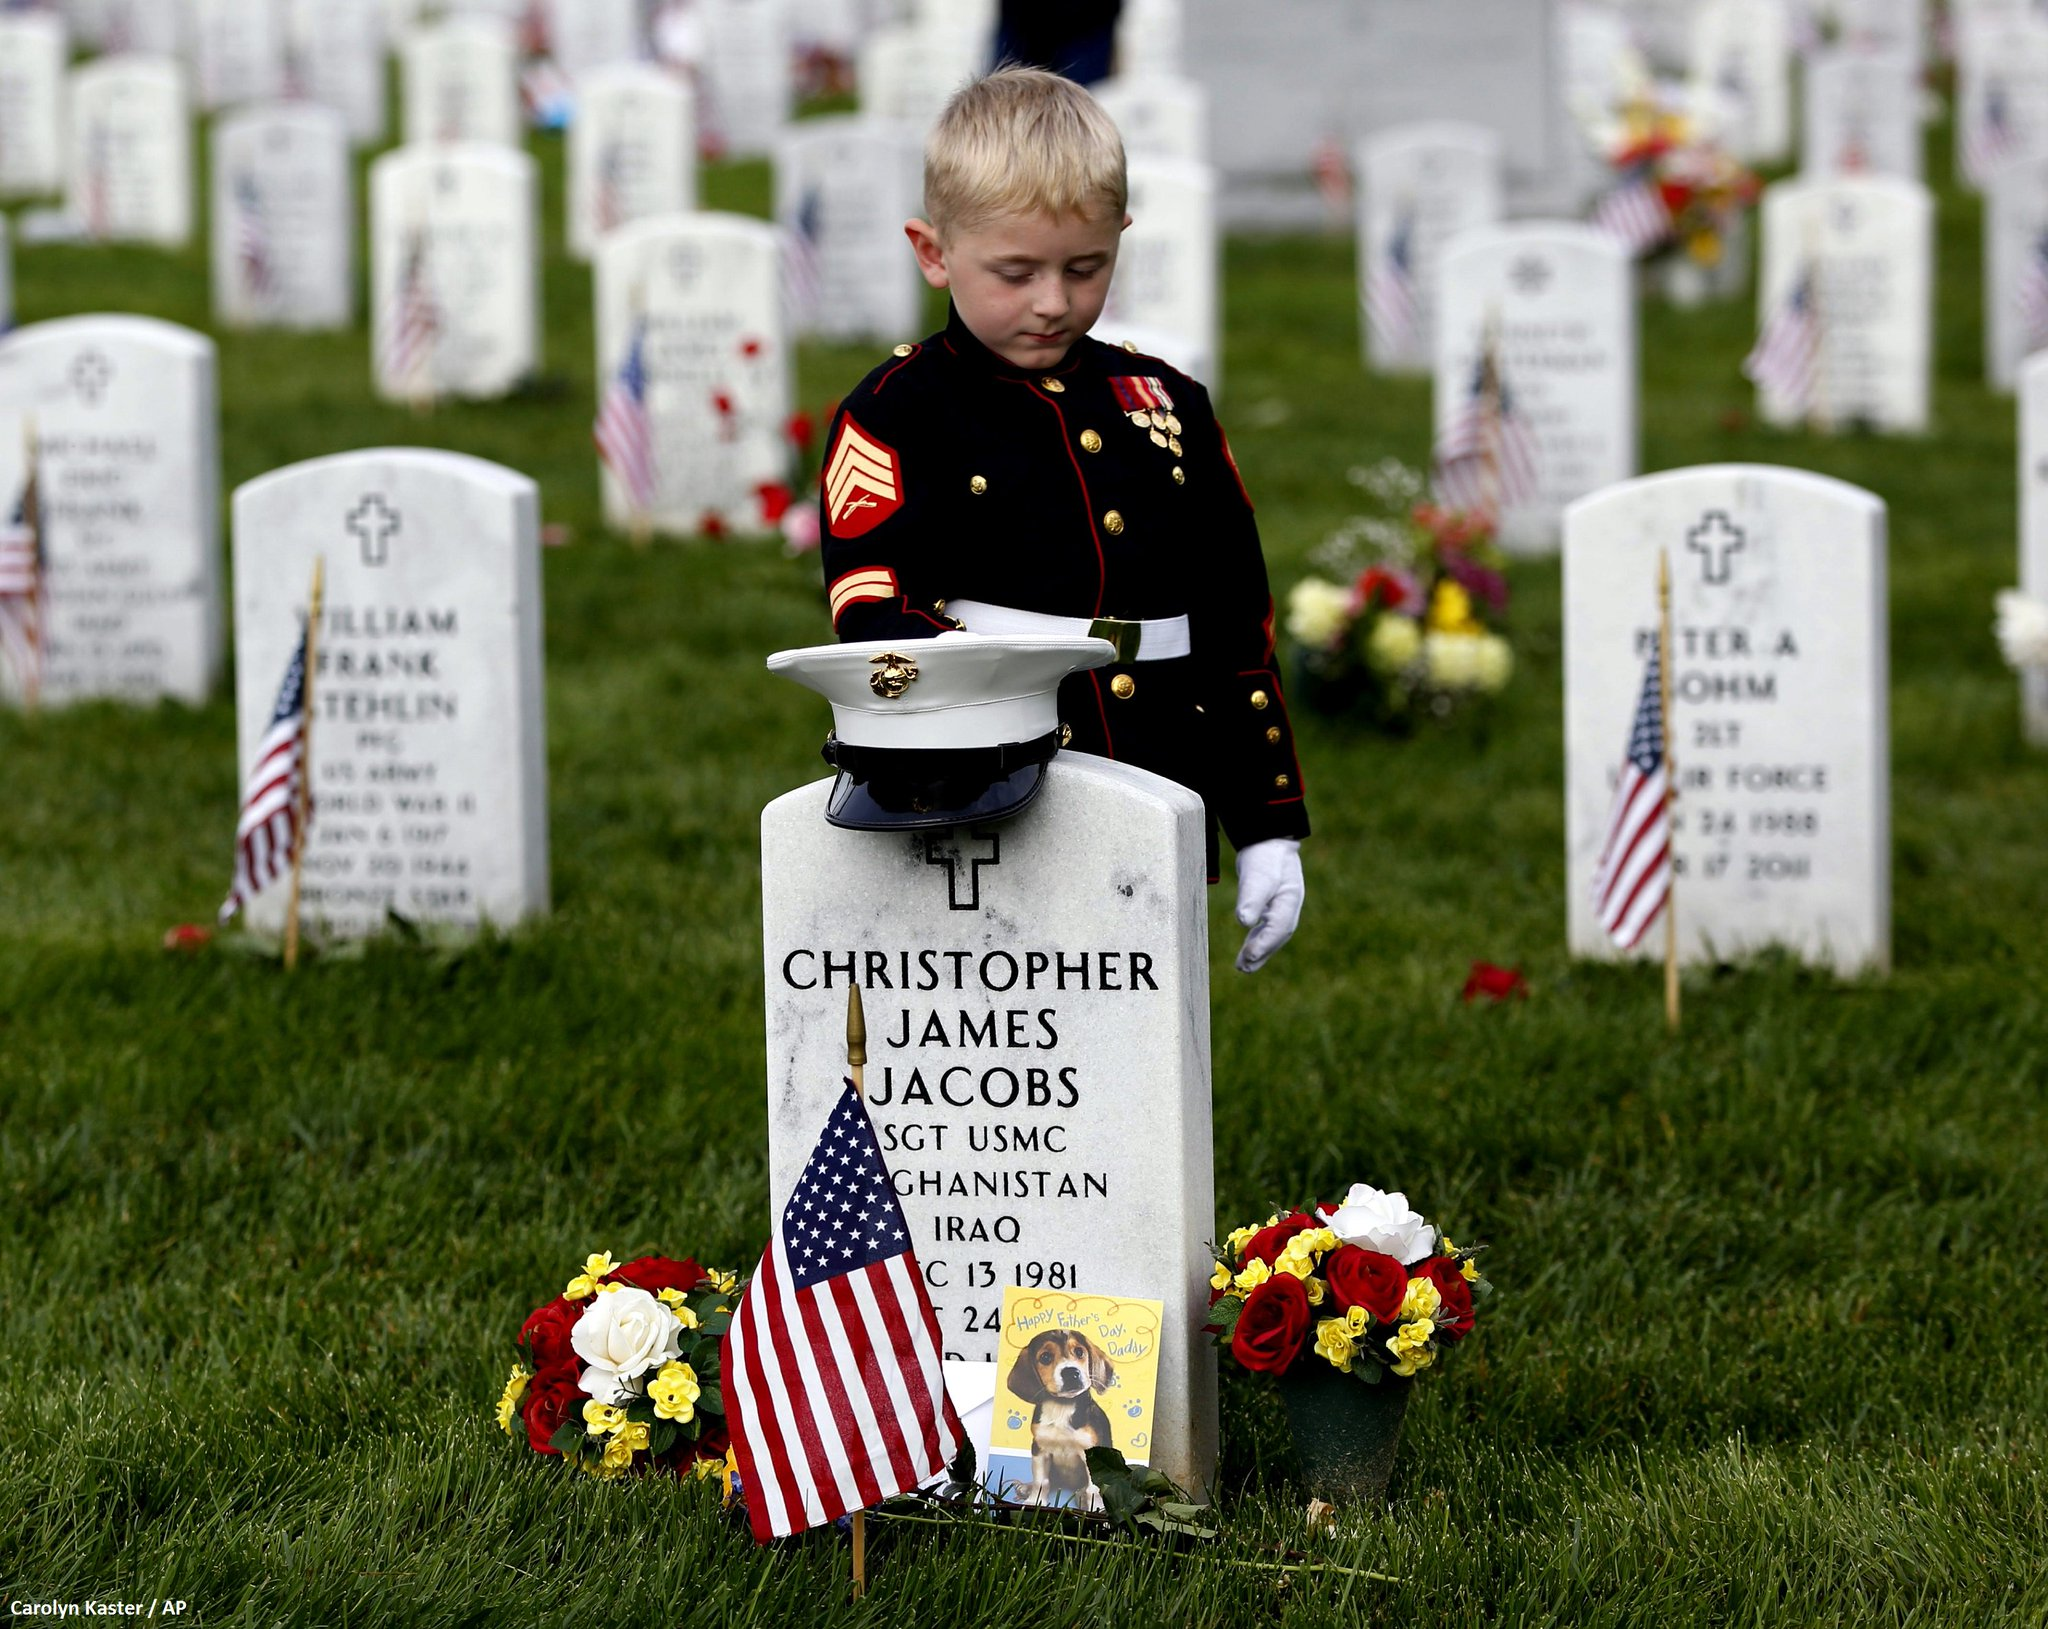 #MemorialDay: Christian Jacobs, 5, stands at the gravestone of his father in Section 60 at Arlington Nat'l Cemetery. https://t.co/5x1O1w4Izb